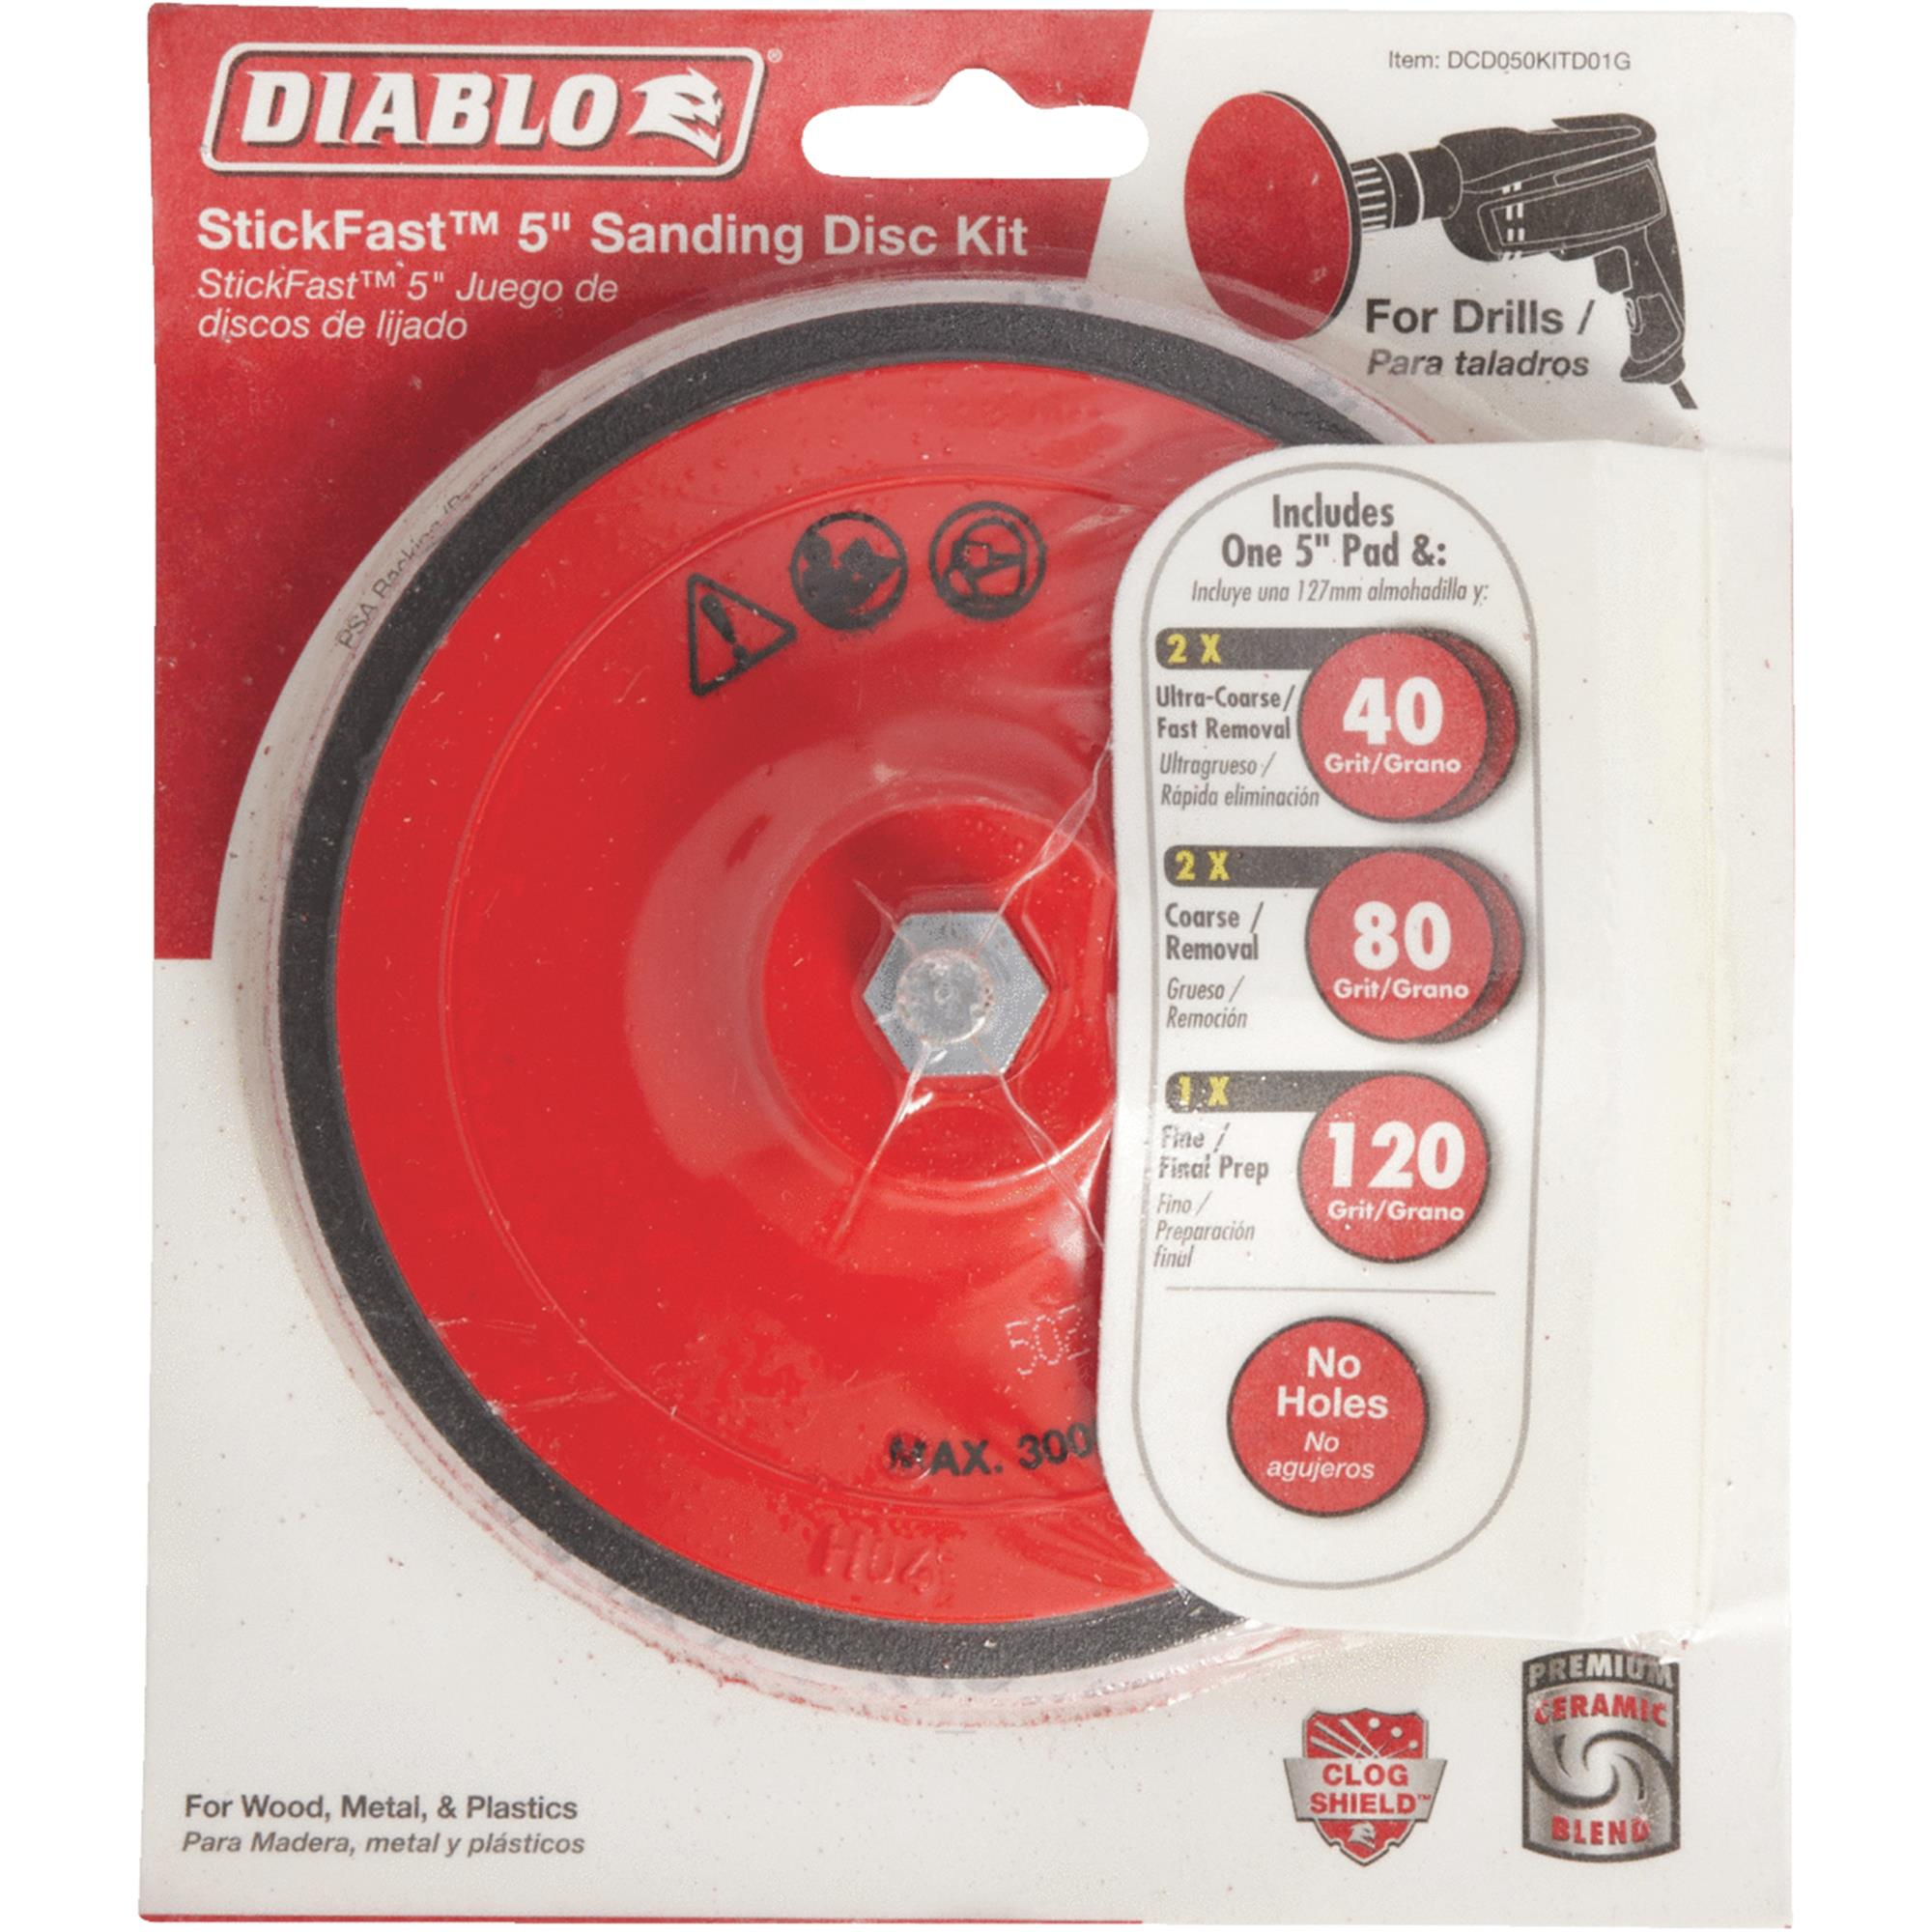 Diablo StickFast Sanding Disc Kit